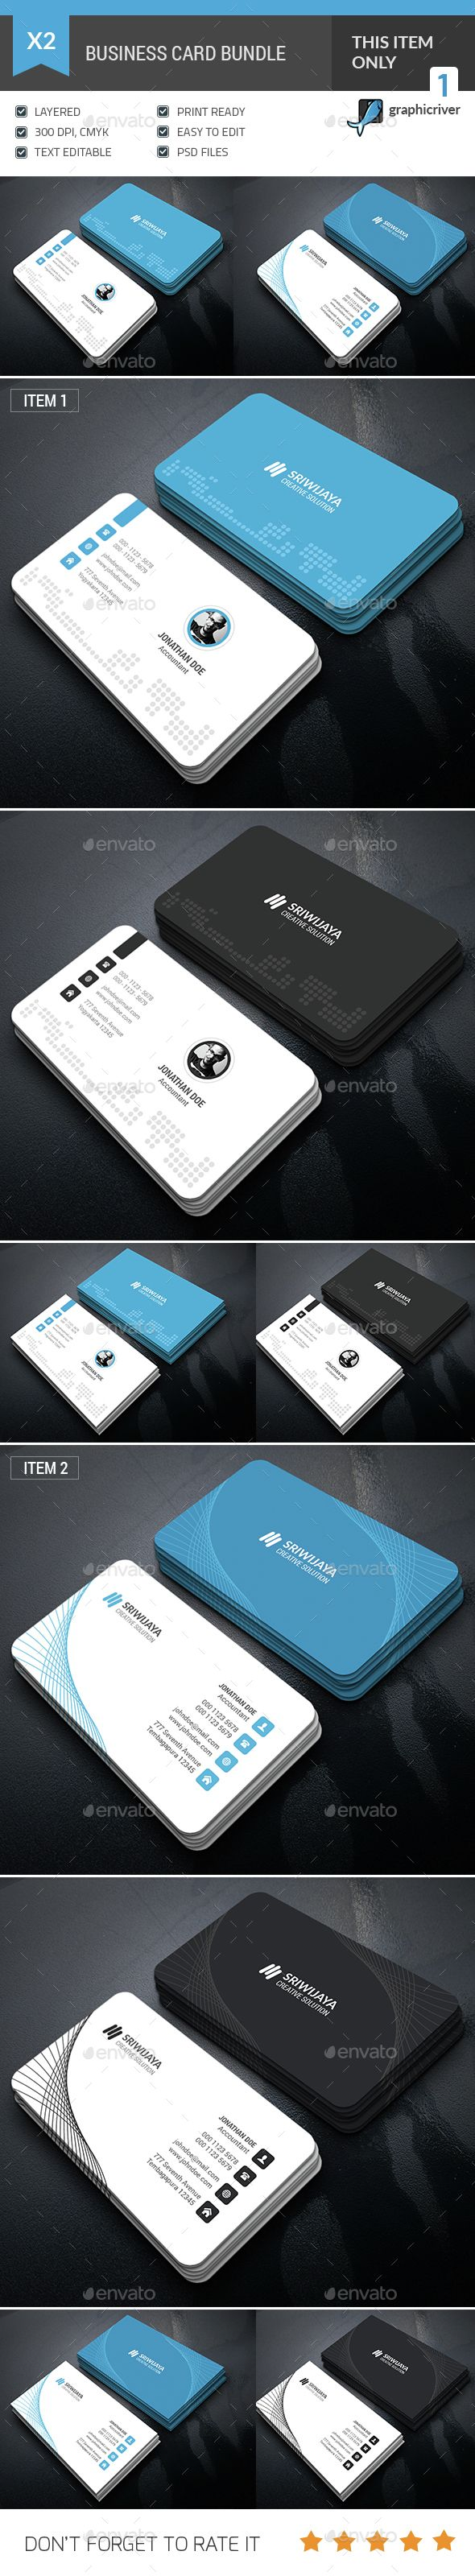 28 best business cards images on pinterest business cards carte business card bundle photoshop psd professional business card available here https flashek Image collections